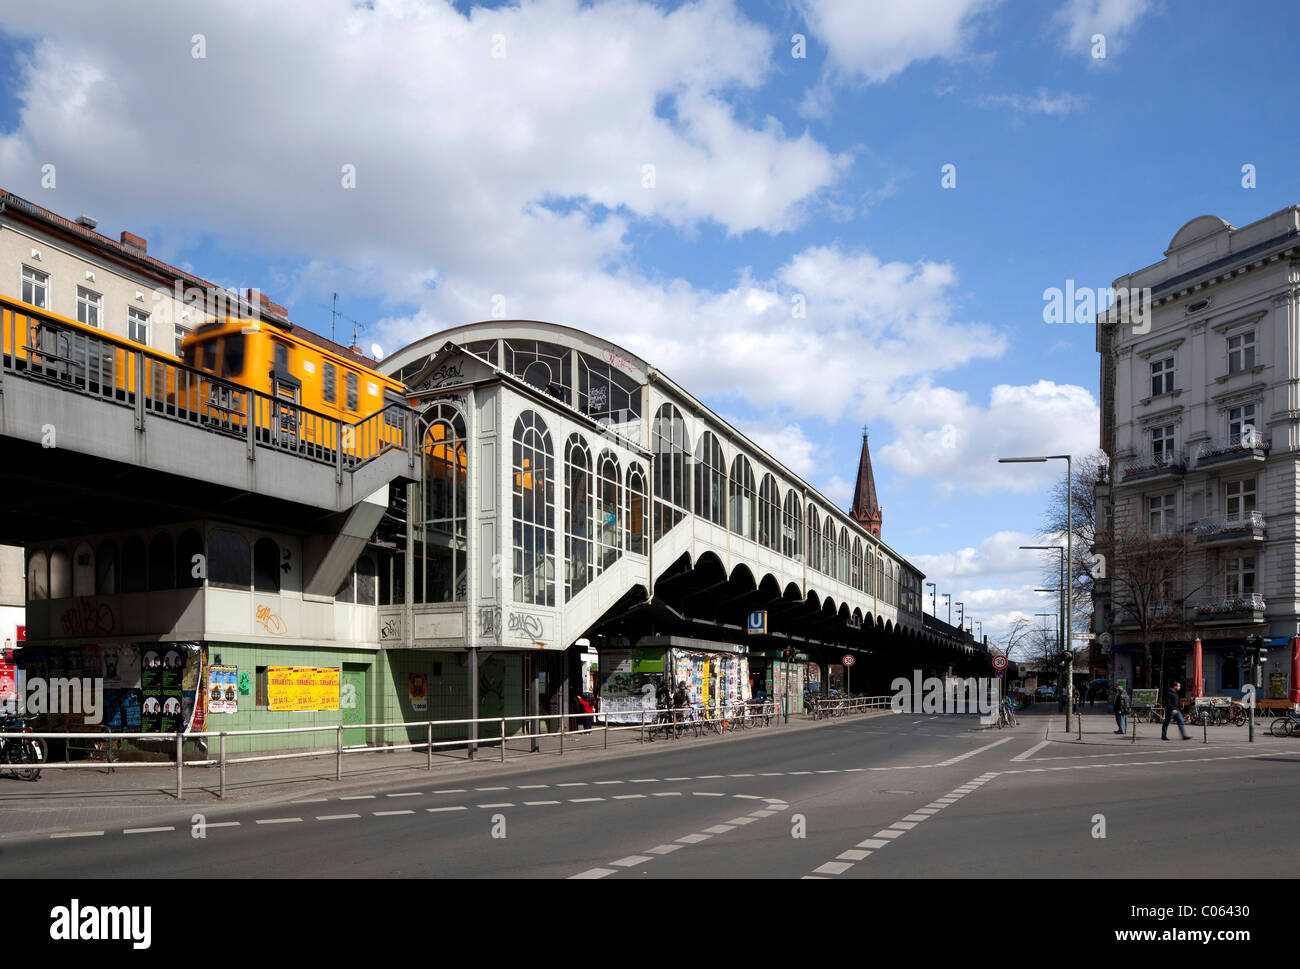 Goerlitzer Bahnhof metro station, Kreuzberg, Berlin, Germany, Europe - Stock Image